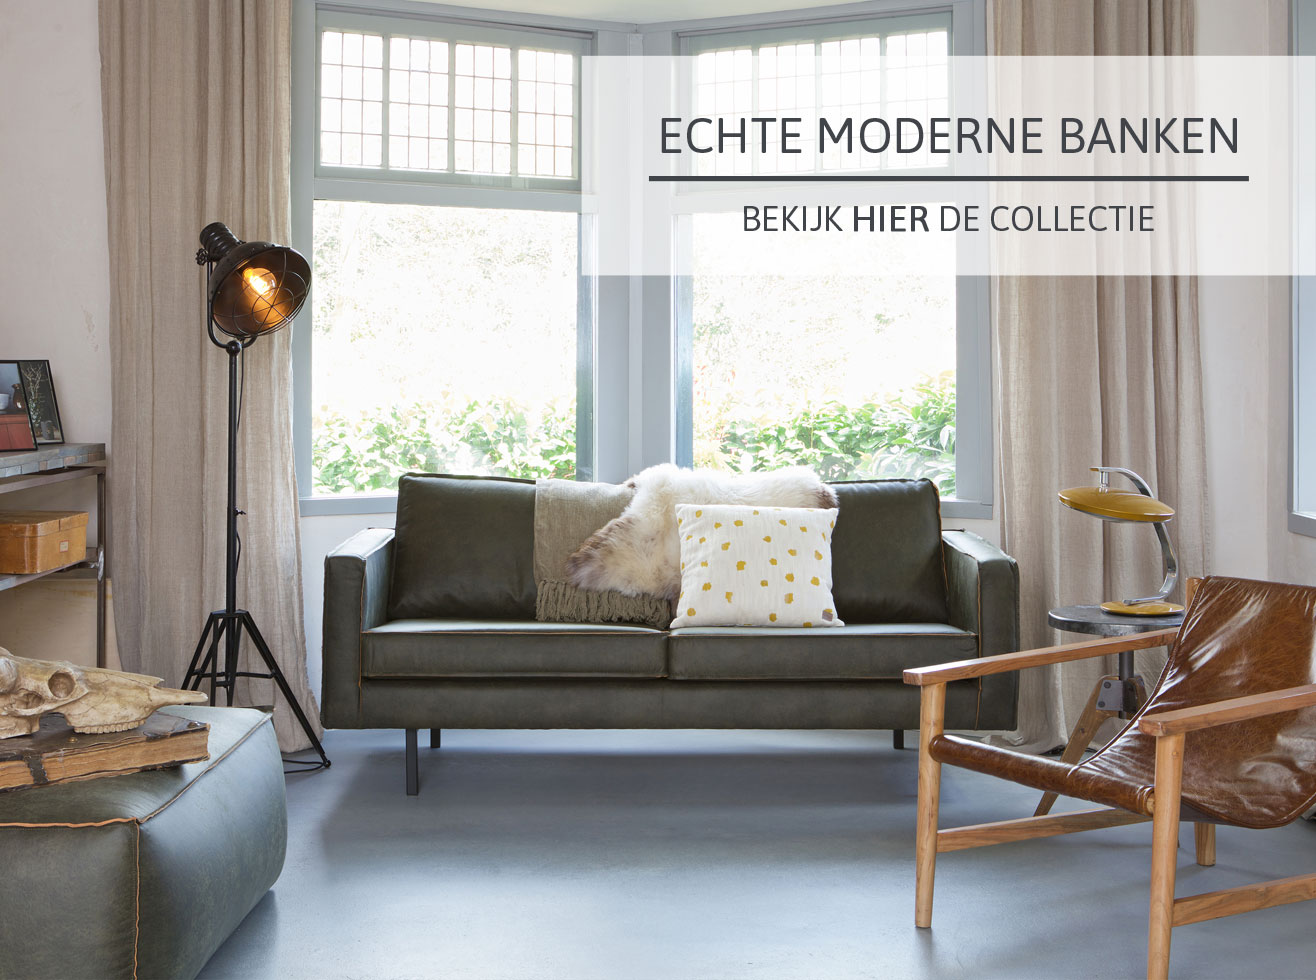 Moderne banken bij Home Center